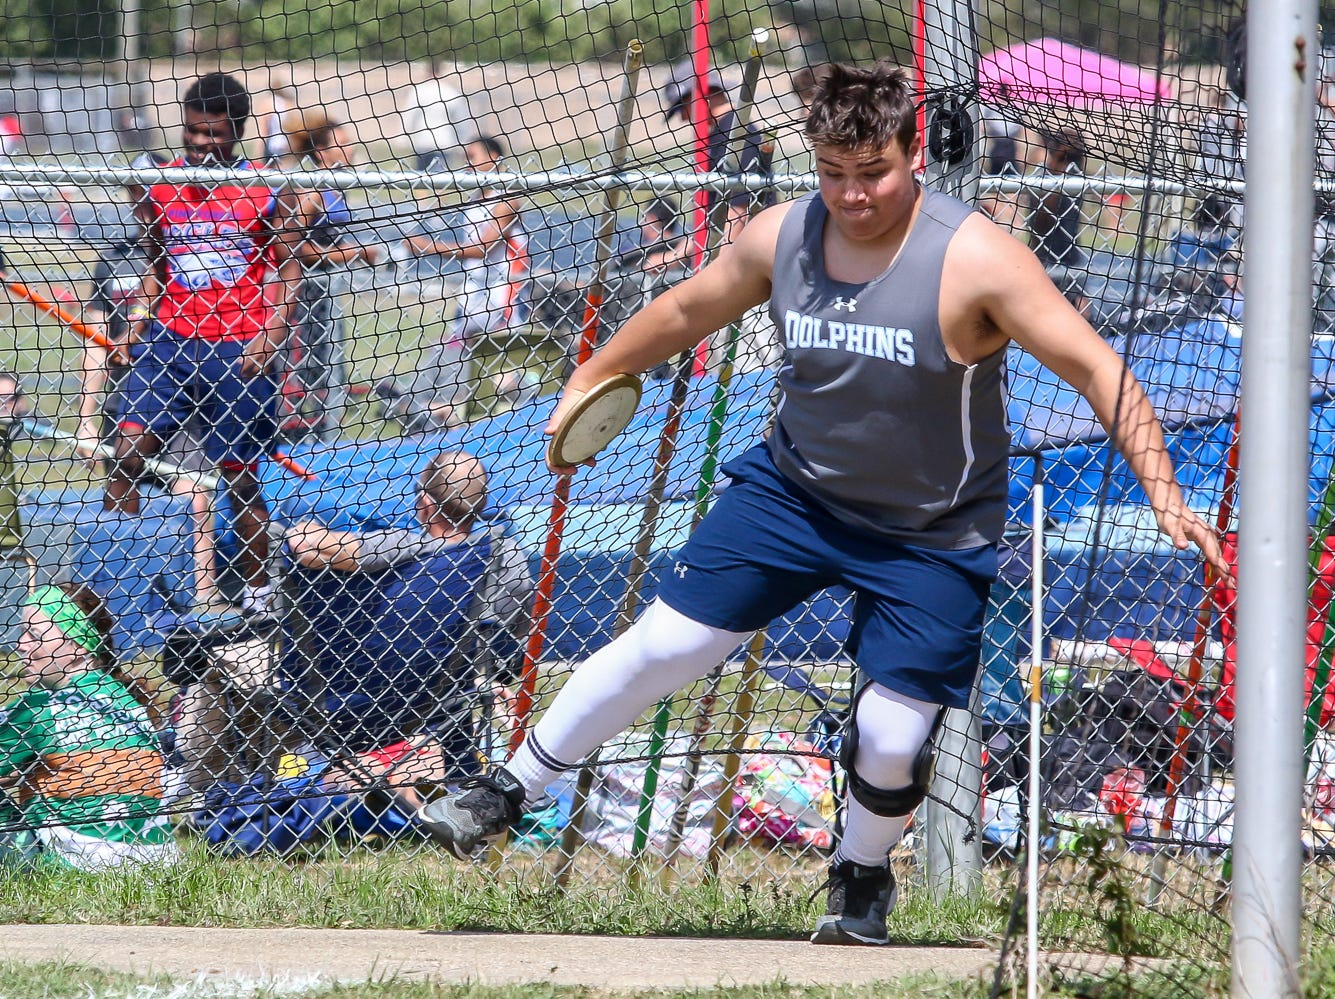 Gulf Shores' Cole Jennings competes in the discus throw on Saturday, March 9, 2019, during the Aggie Invitational at Washington High School.